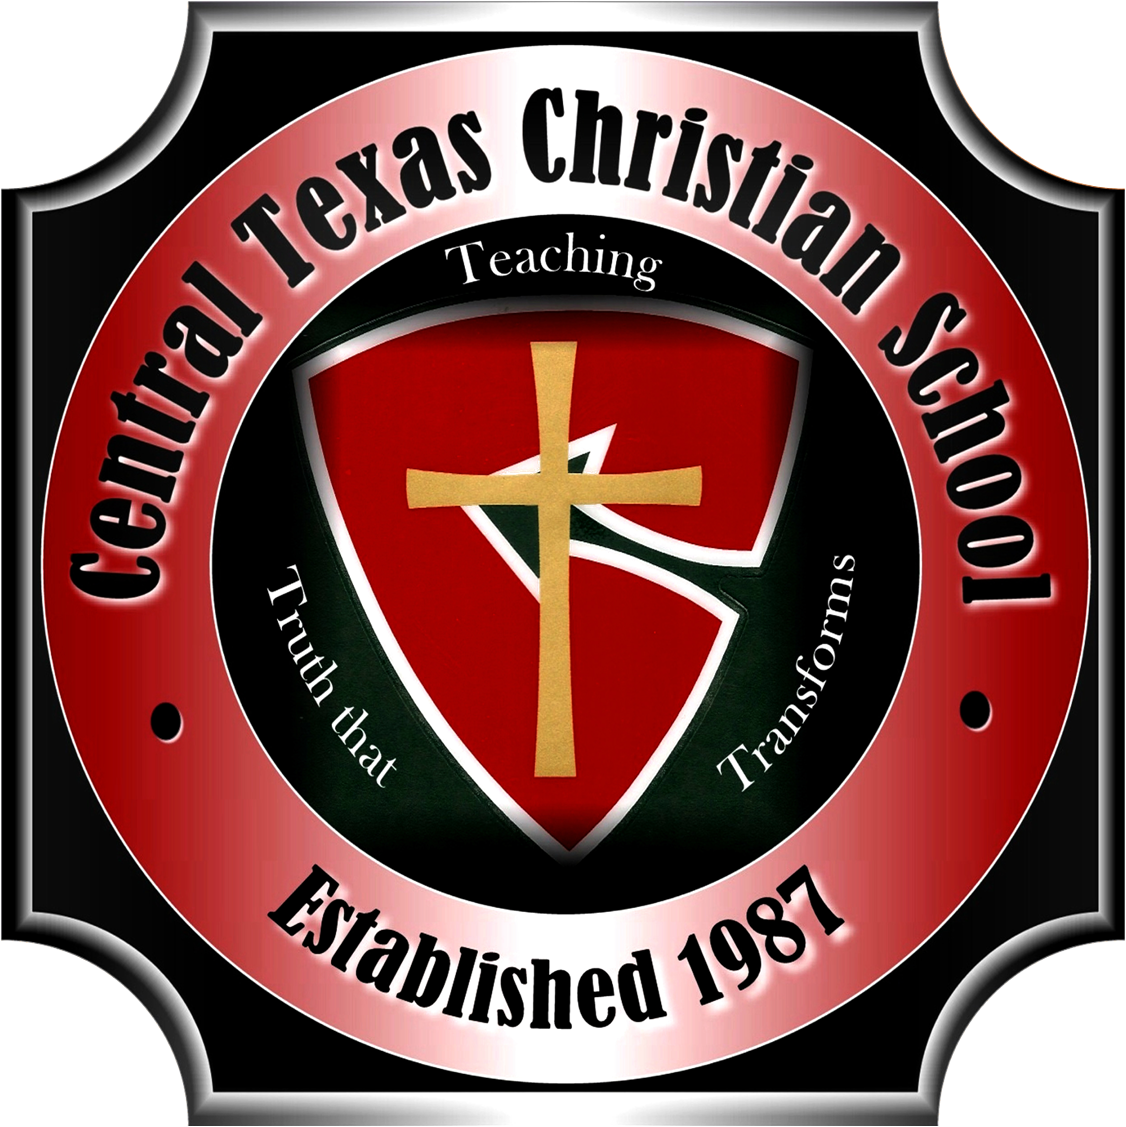 Central Texas Christian School